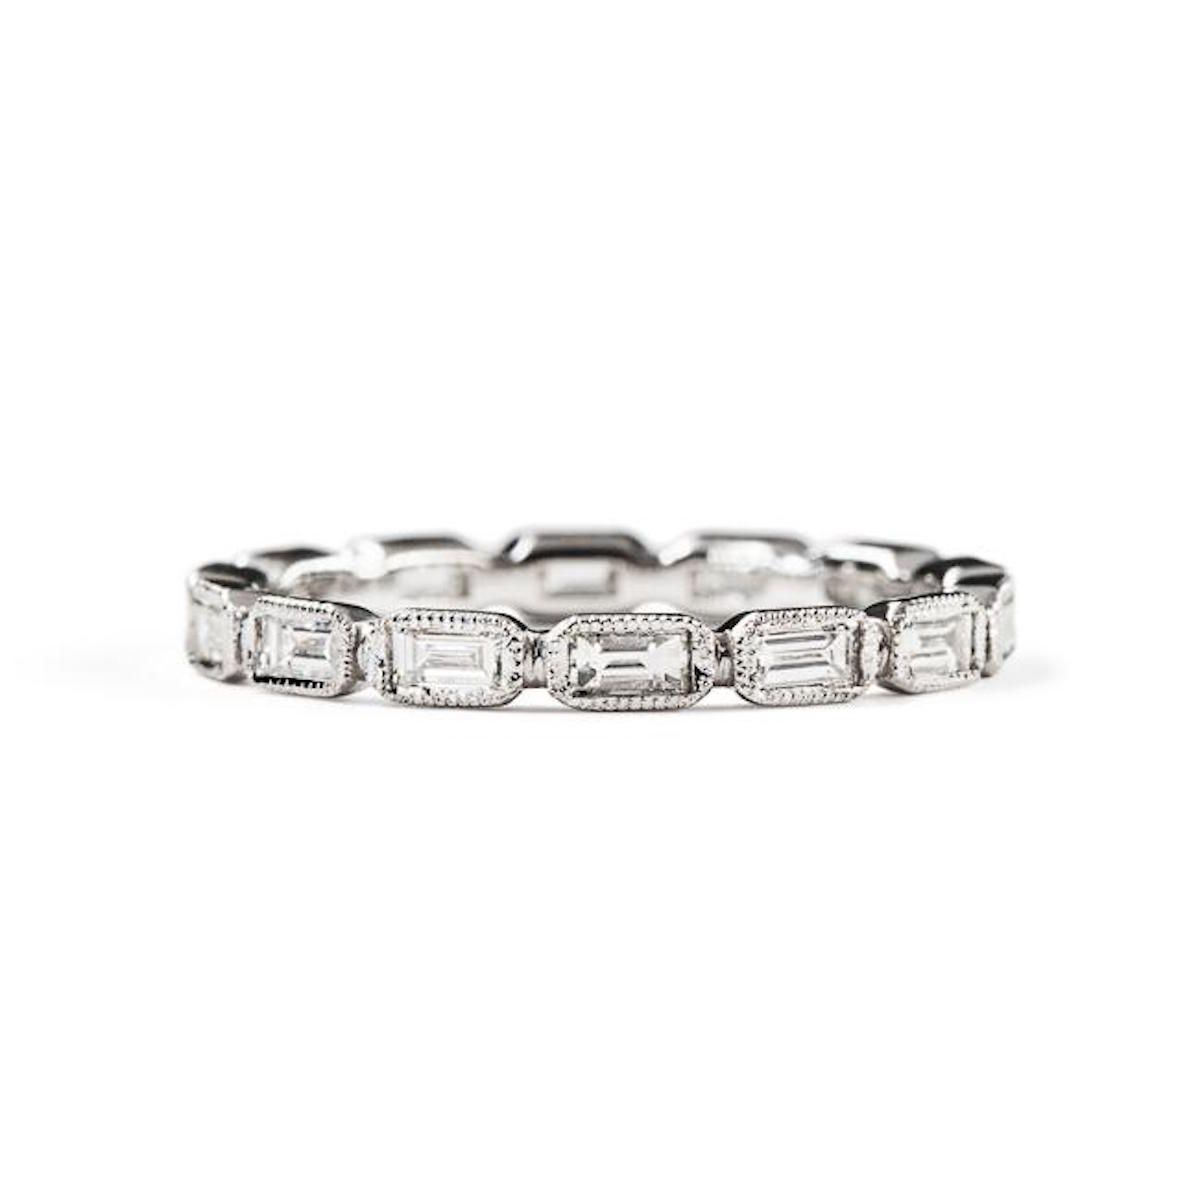 ILA Afton Ring in 14k with Baguette Diamonds